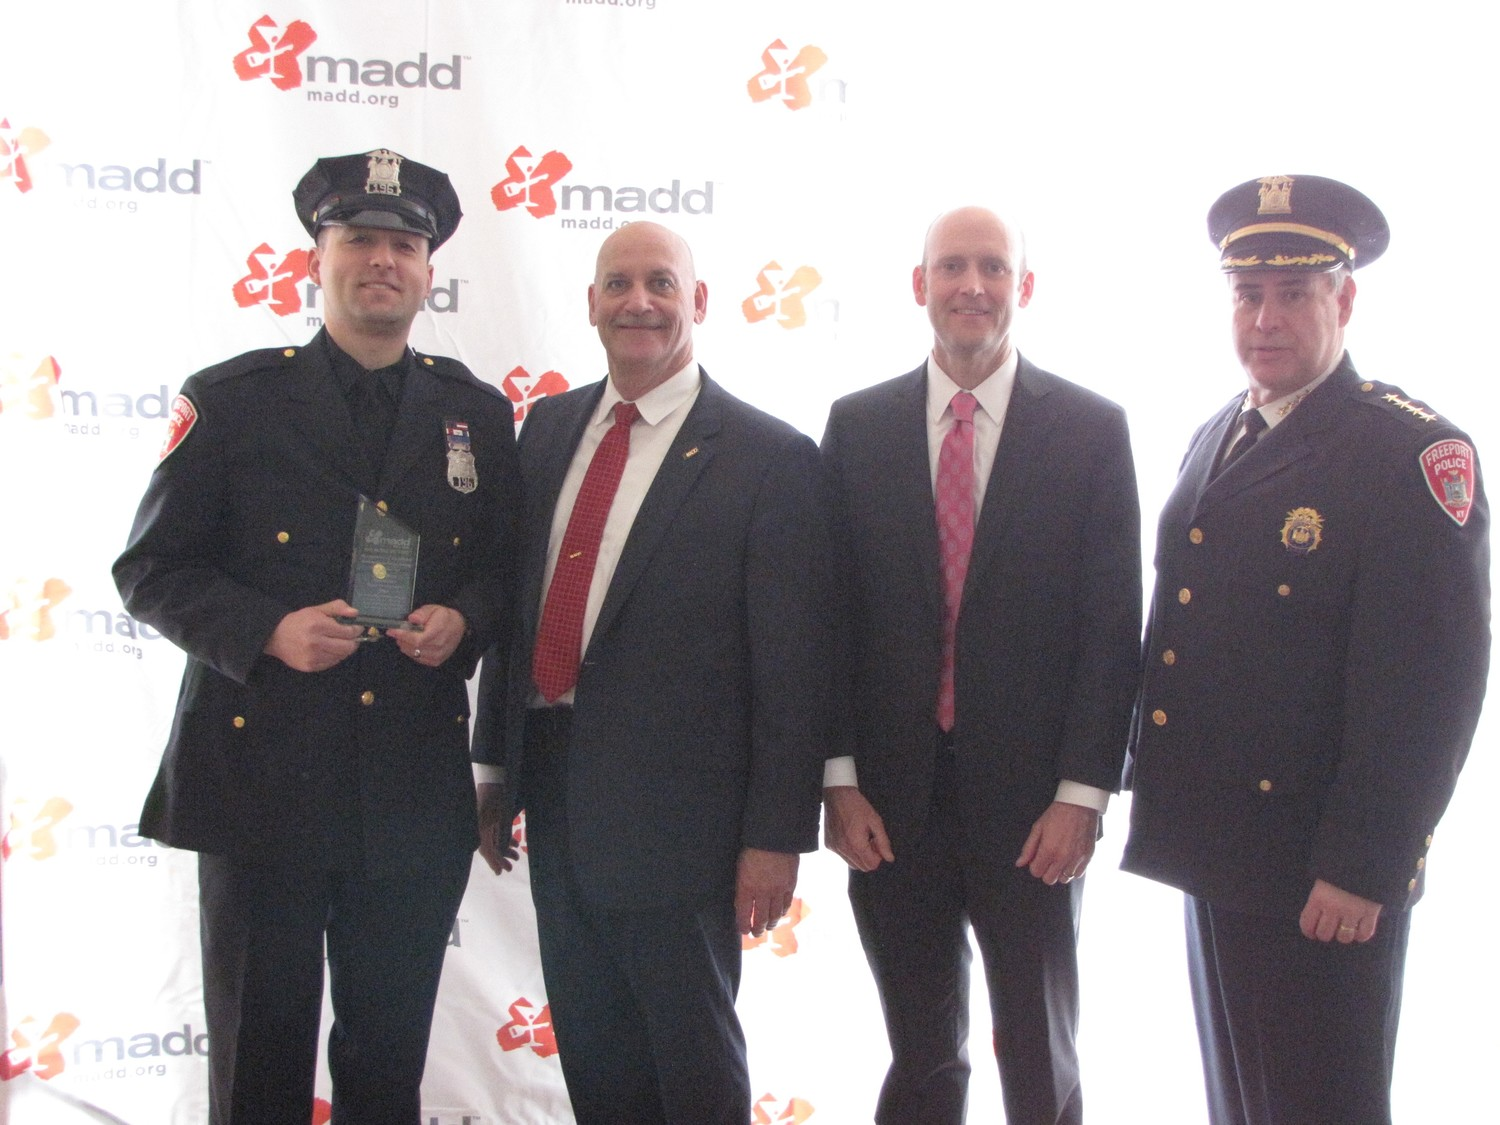 Freeport Police officer Alan Moreno, far left, accepted his award from MADD Executive State Director Richard Mallow, Chief Government Affairs Officer J.T. Griffin and Freeport Police Chief Miguel Bermudez.